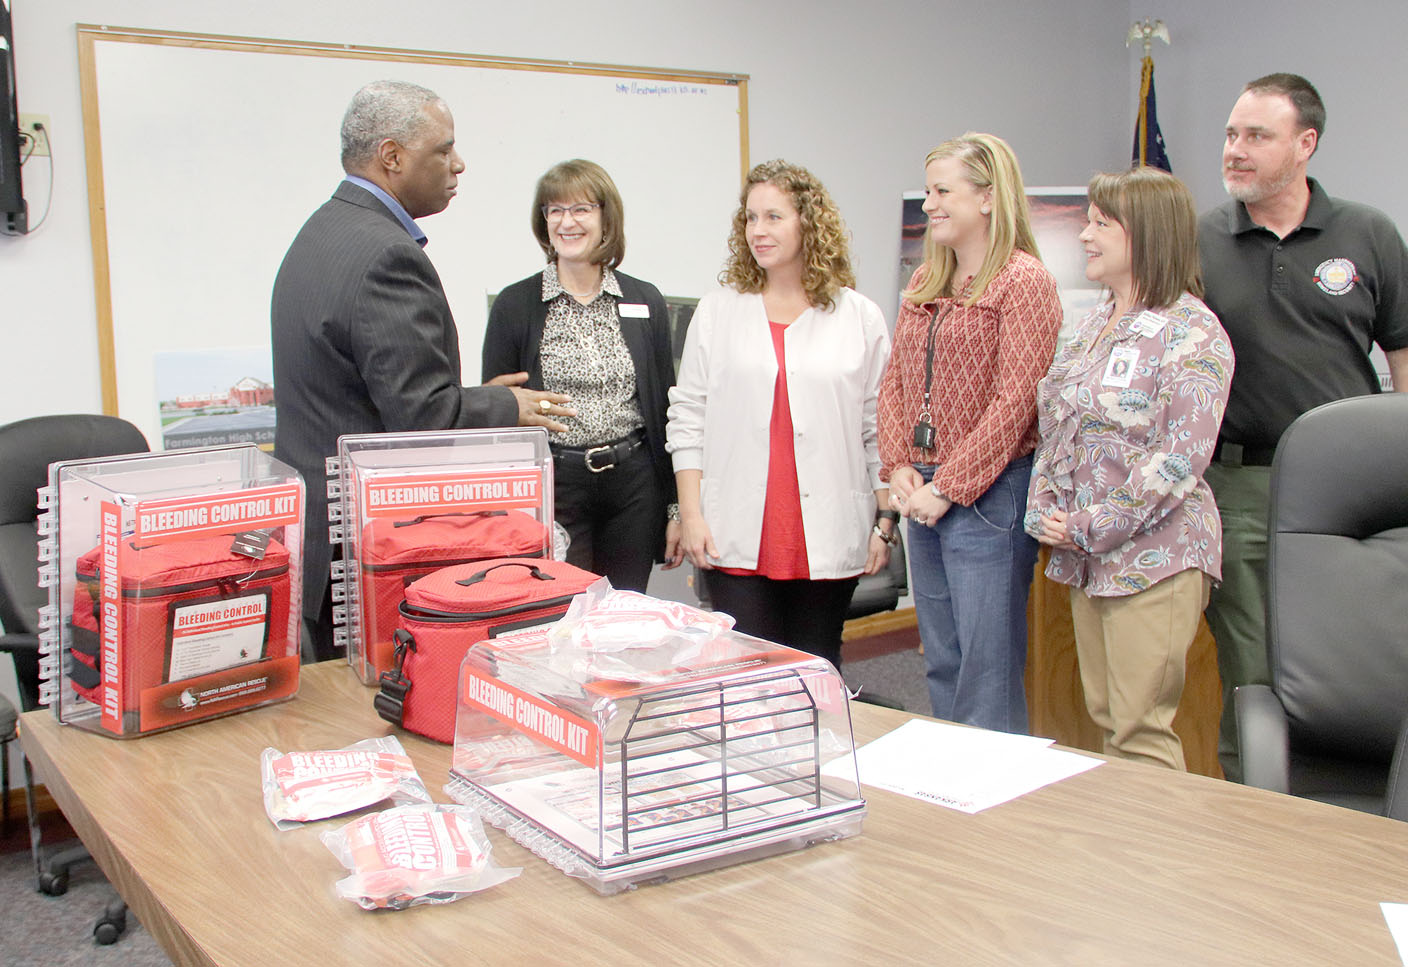 Schools receive medical kits to stop bleeding